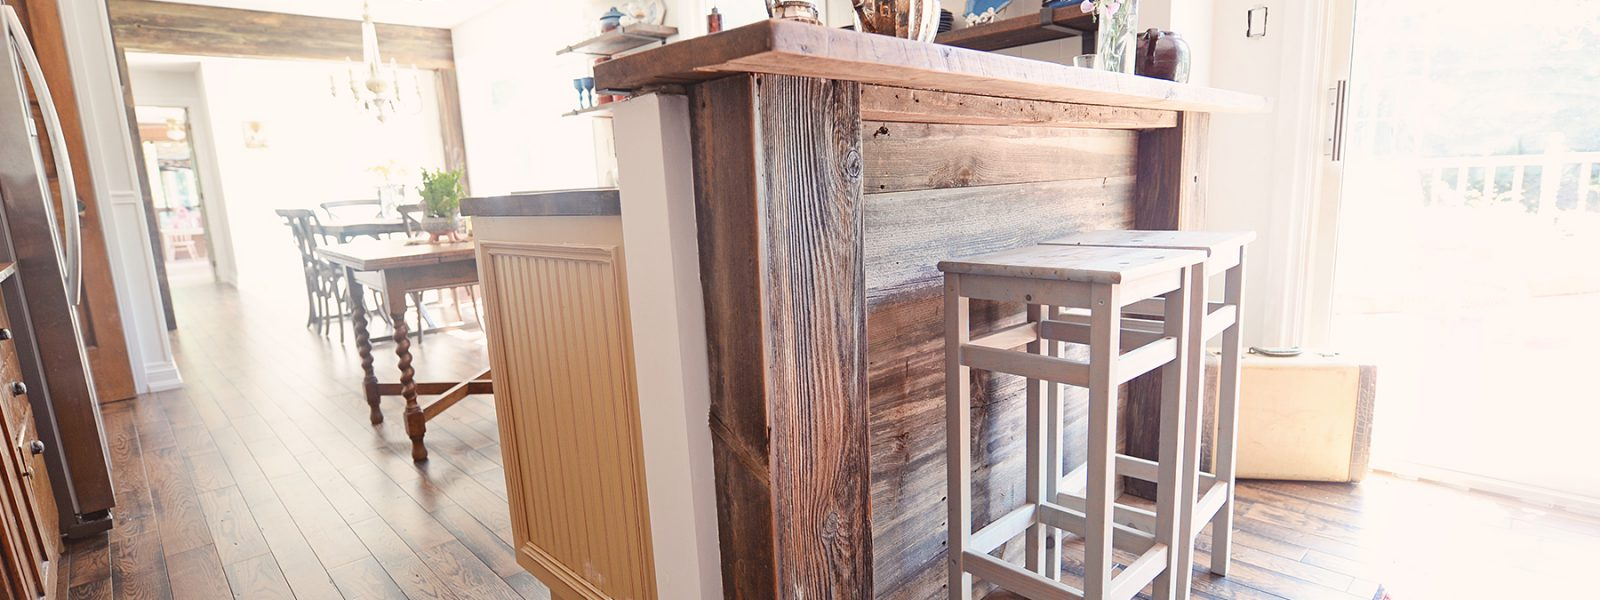 Reclaimed Wood Kitchen